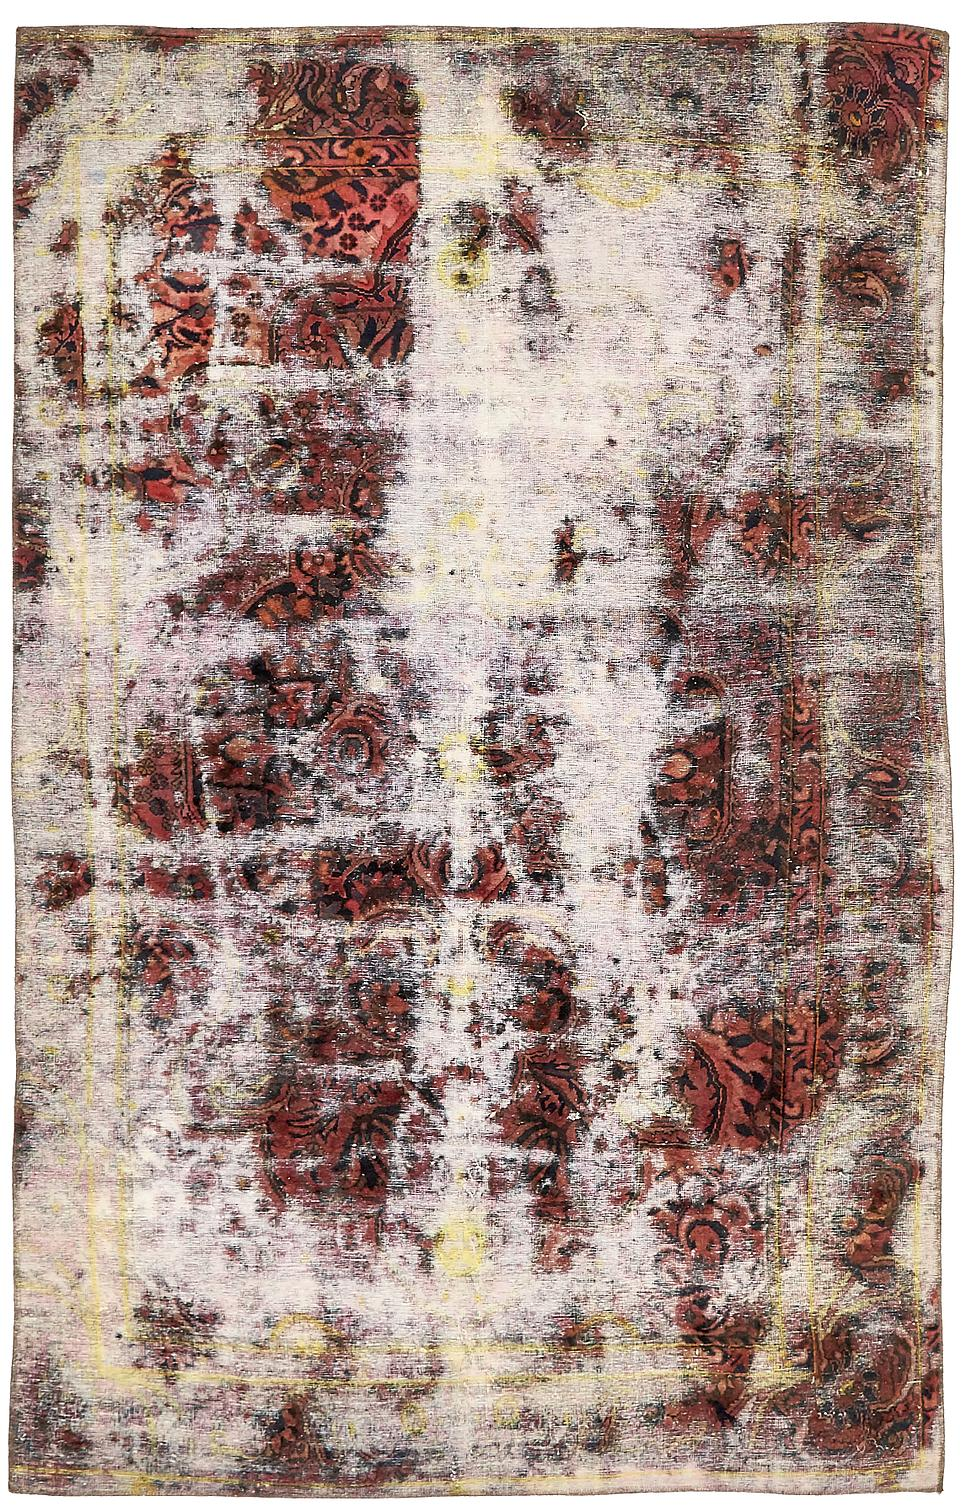 Design Board Low and High Budget Living Rug 2.jpg